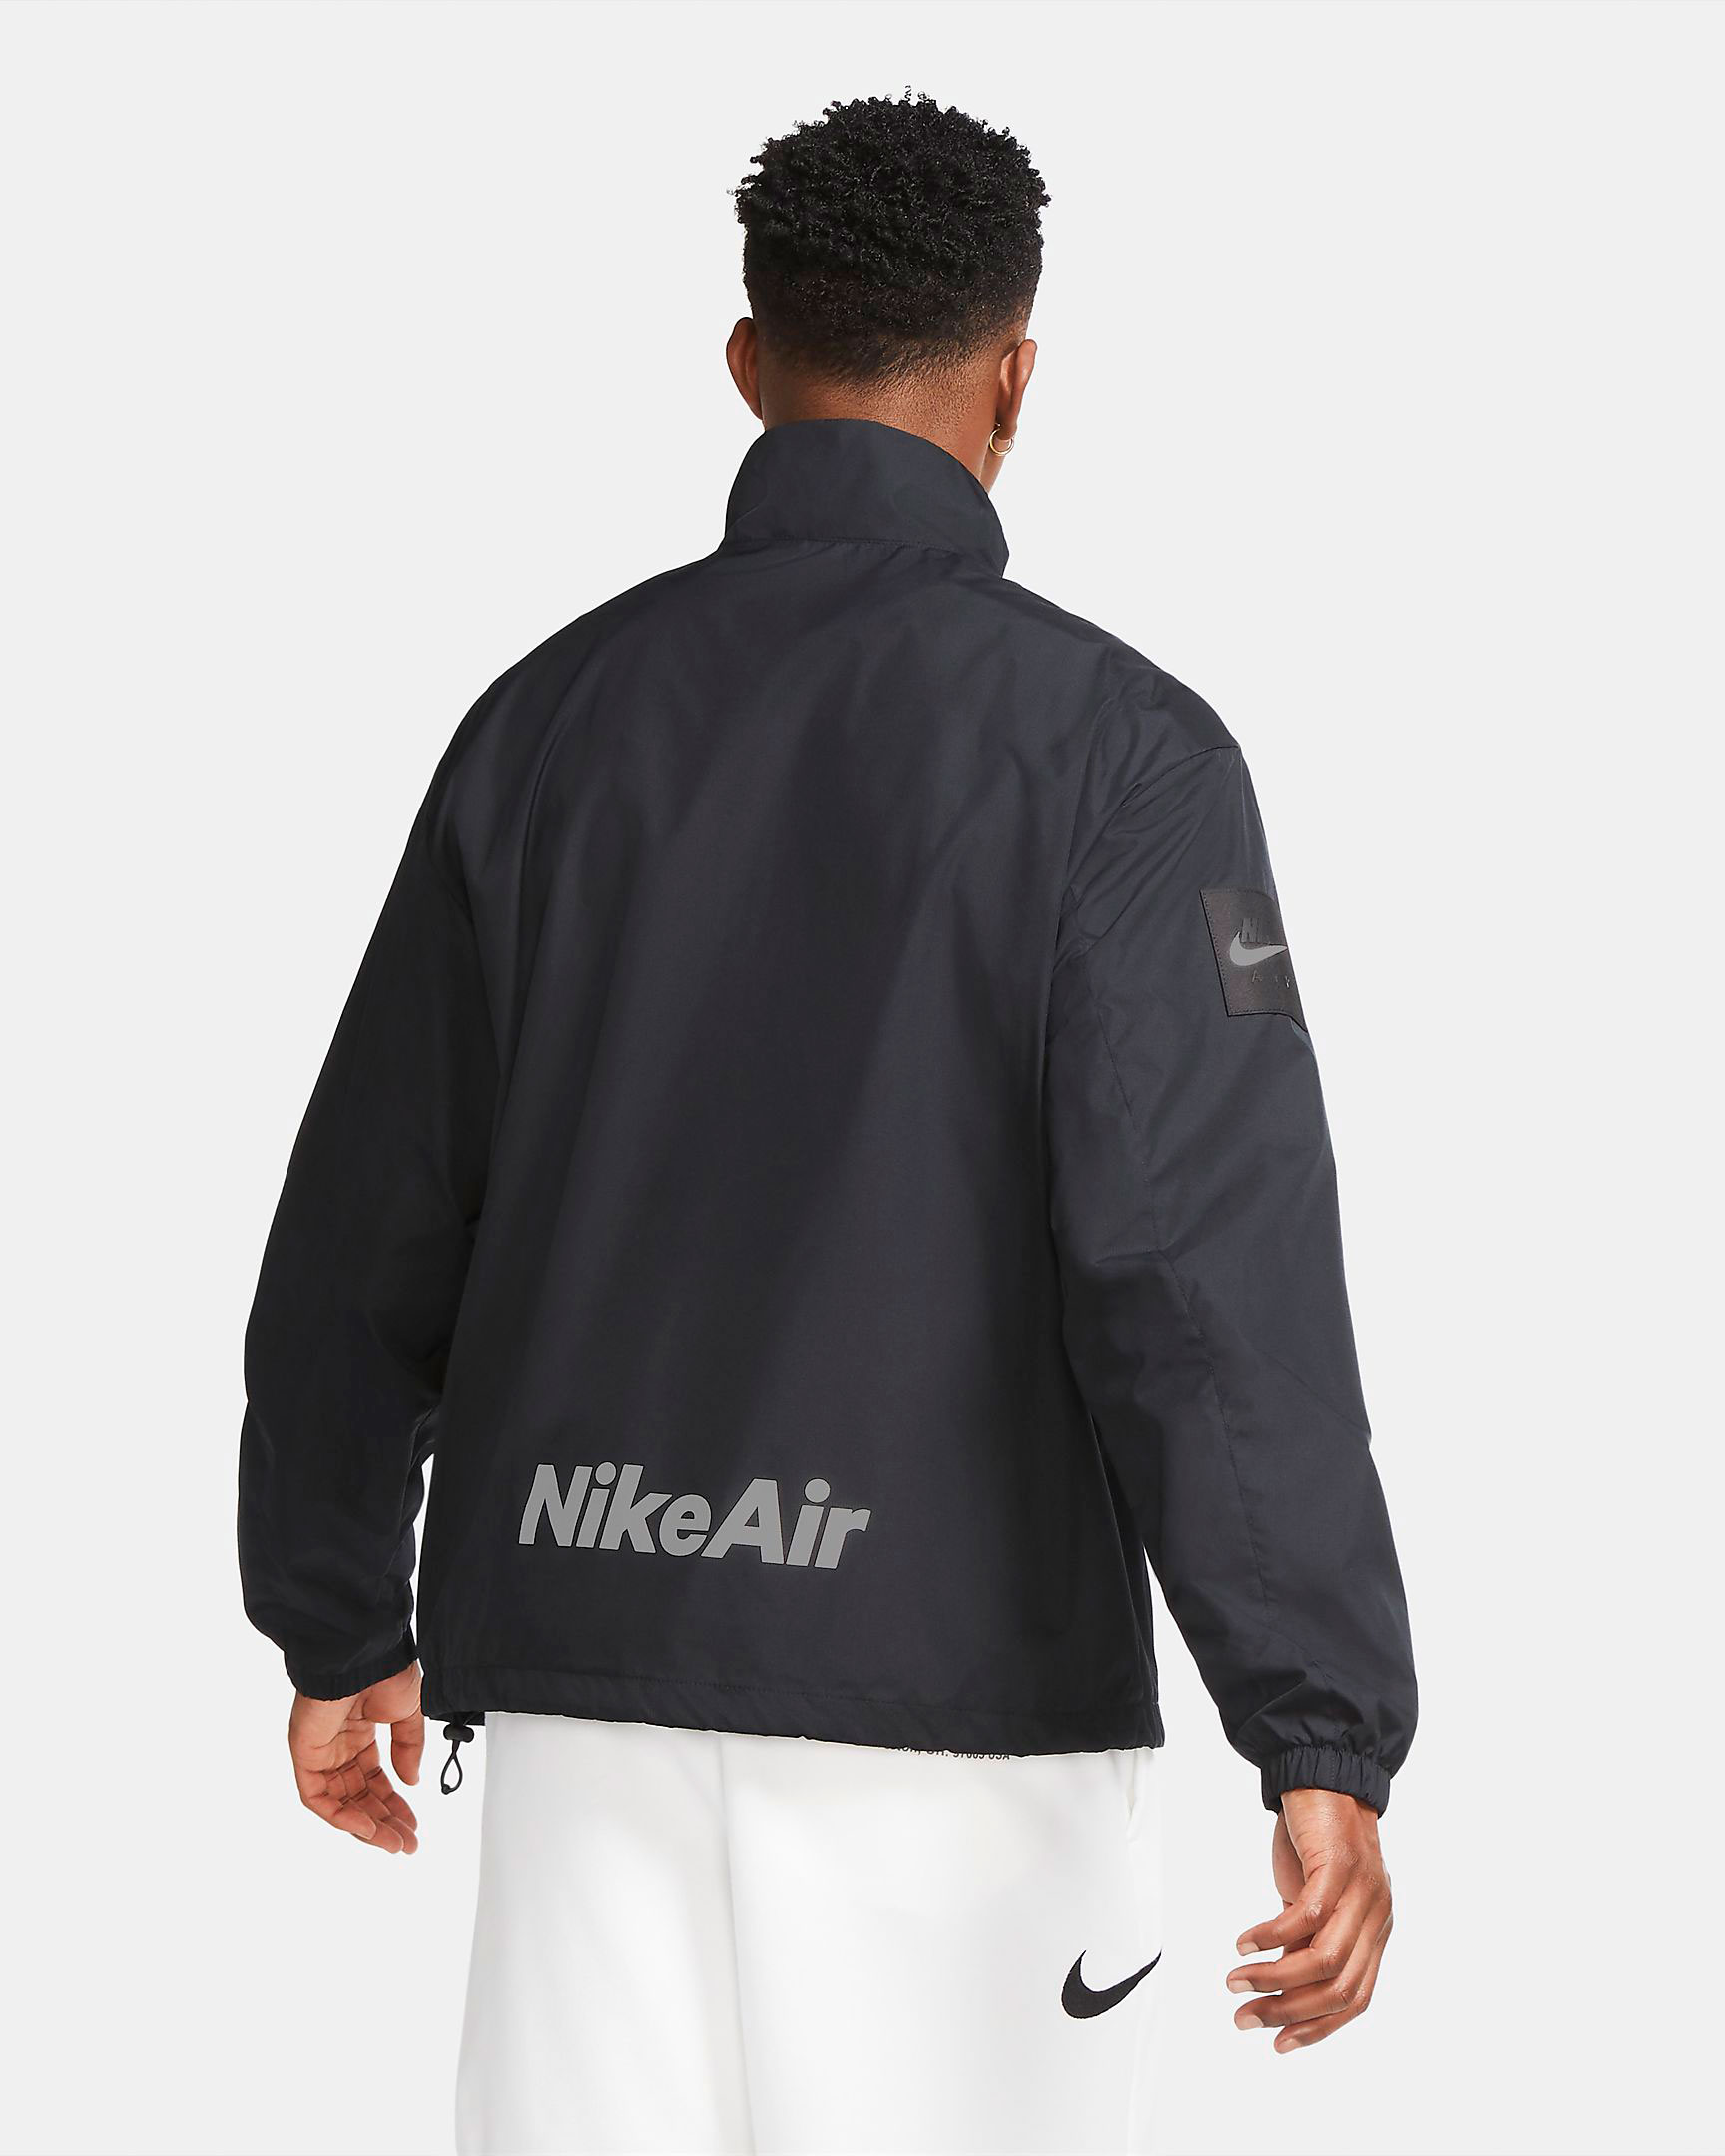 nike-air-utility-reflective-jacket-black-2